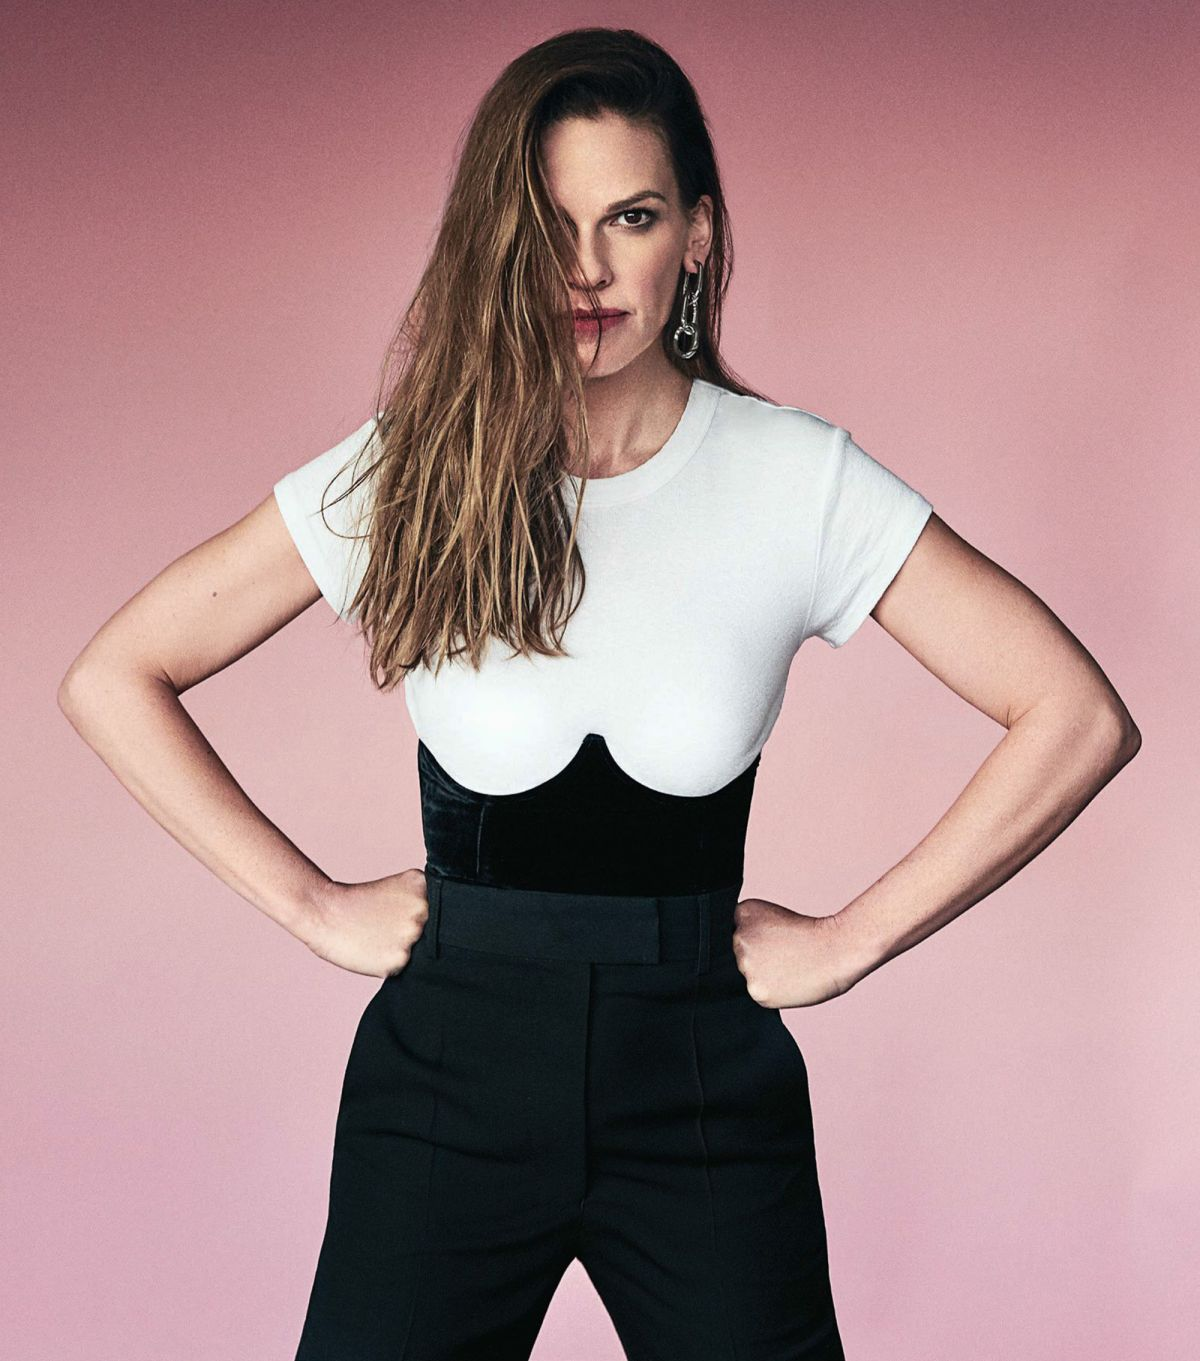 Hilary swank hot something